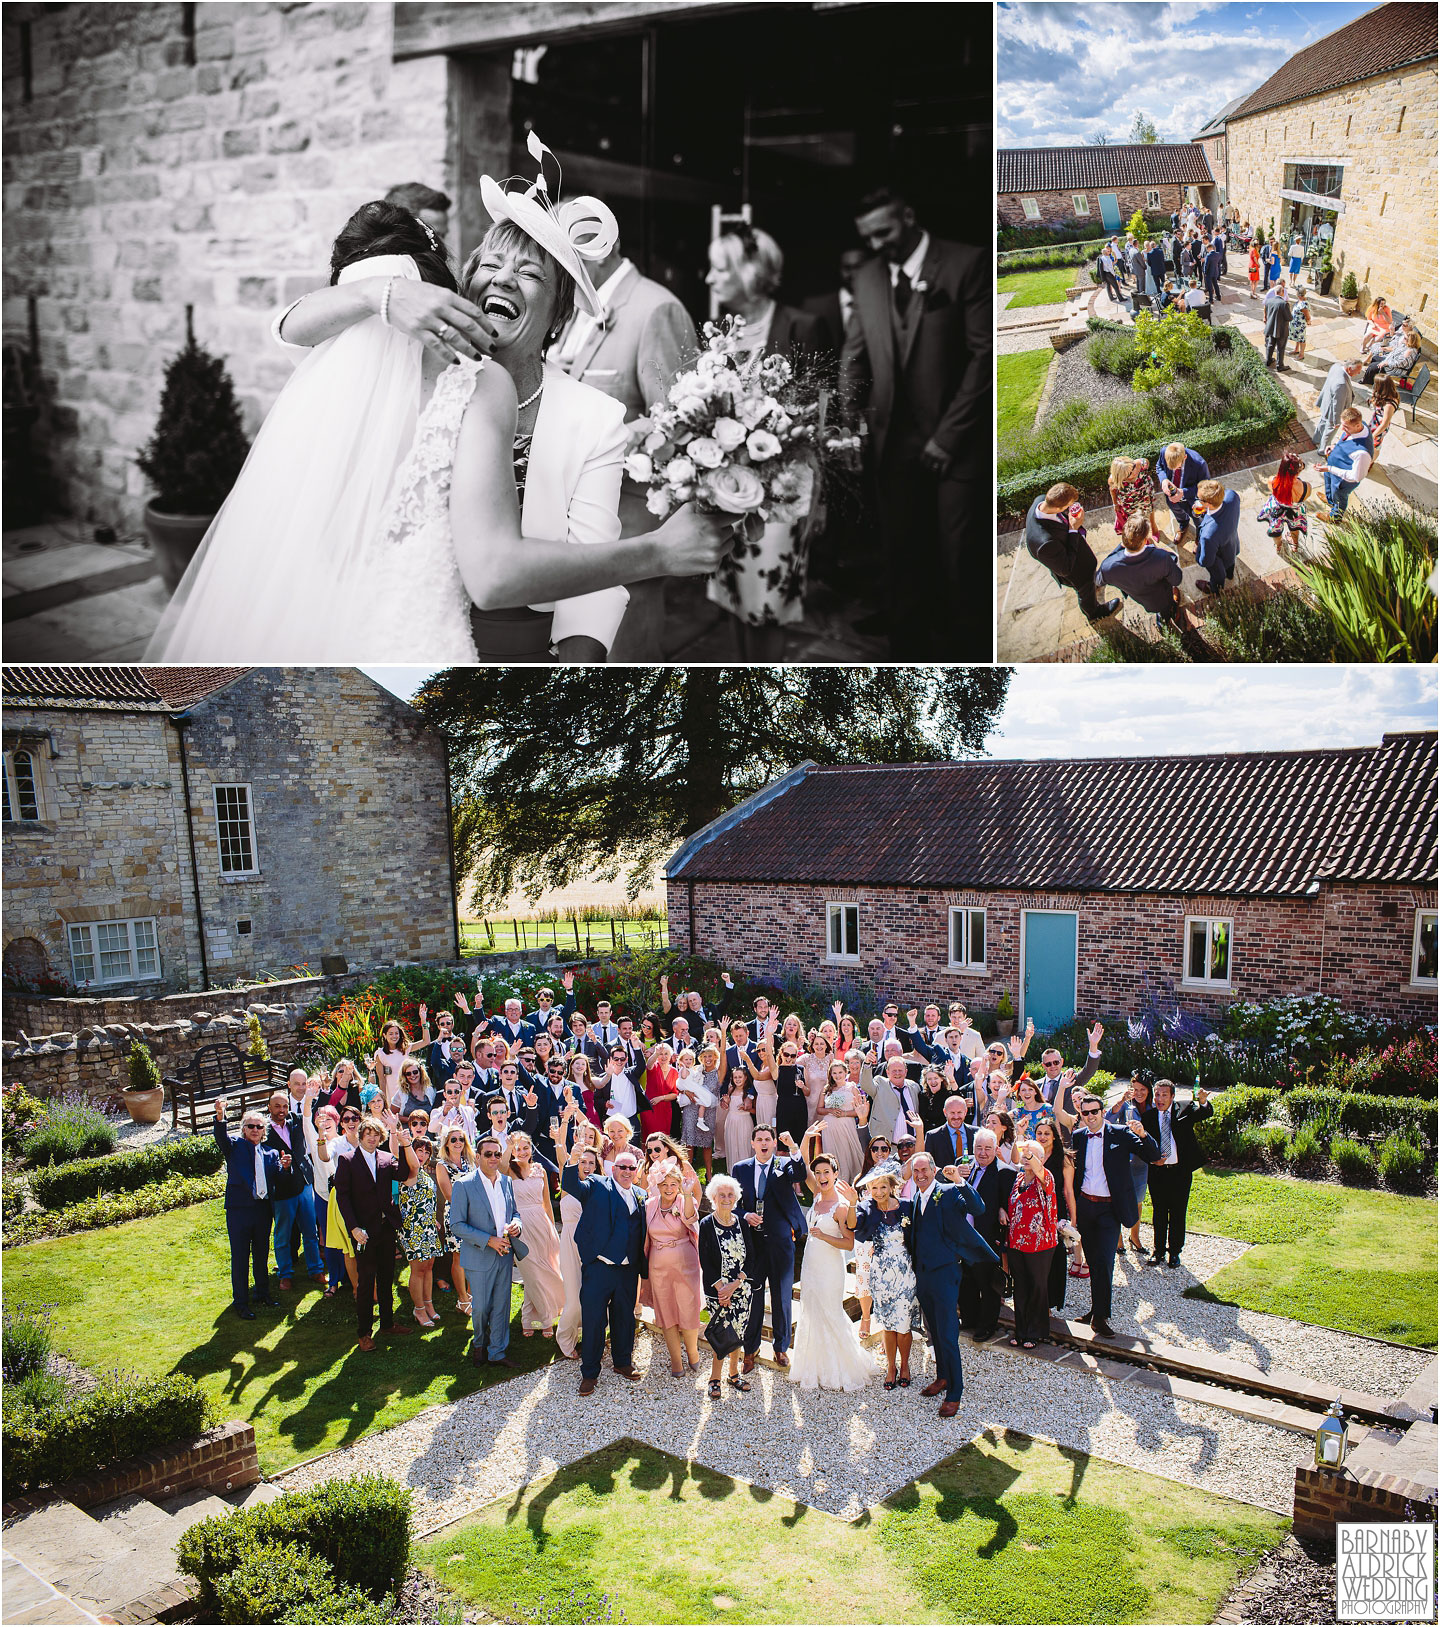 Moments between friends and family at a wedding at Priory Cottages in Yorkshire